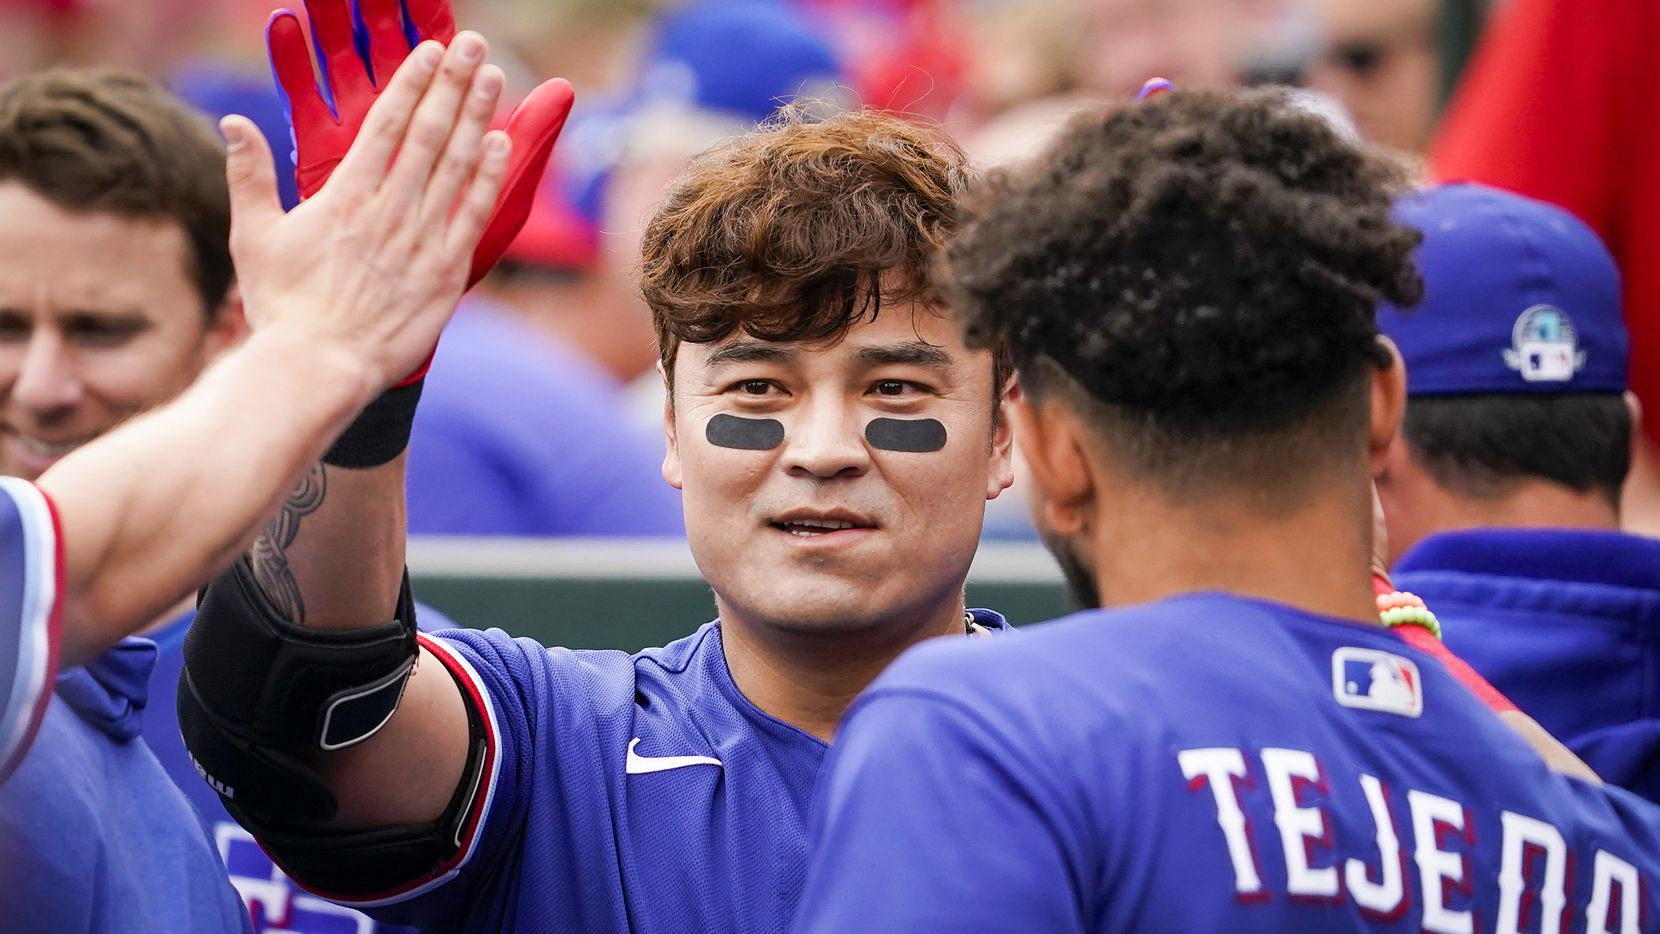 Texas Rangers outfielder Shin-Soo Choo high fives teammates in the dugout before a spring training game against the Los Angeles Angels at Tempe Diablo Stadium on Friday, Feb. 28, 2020, in Tempe, Ariz.